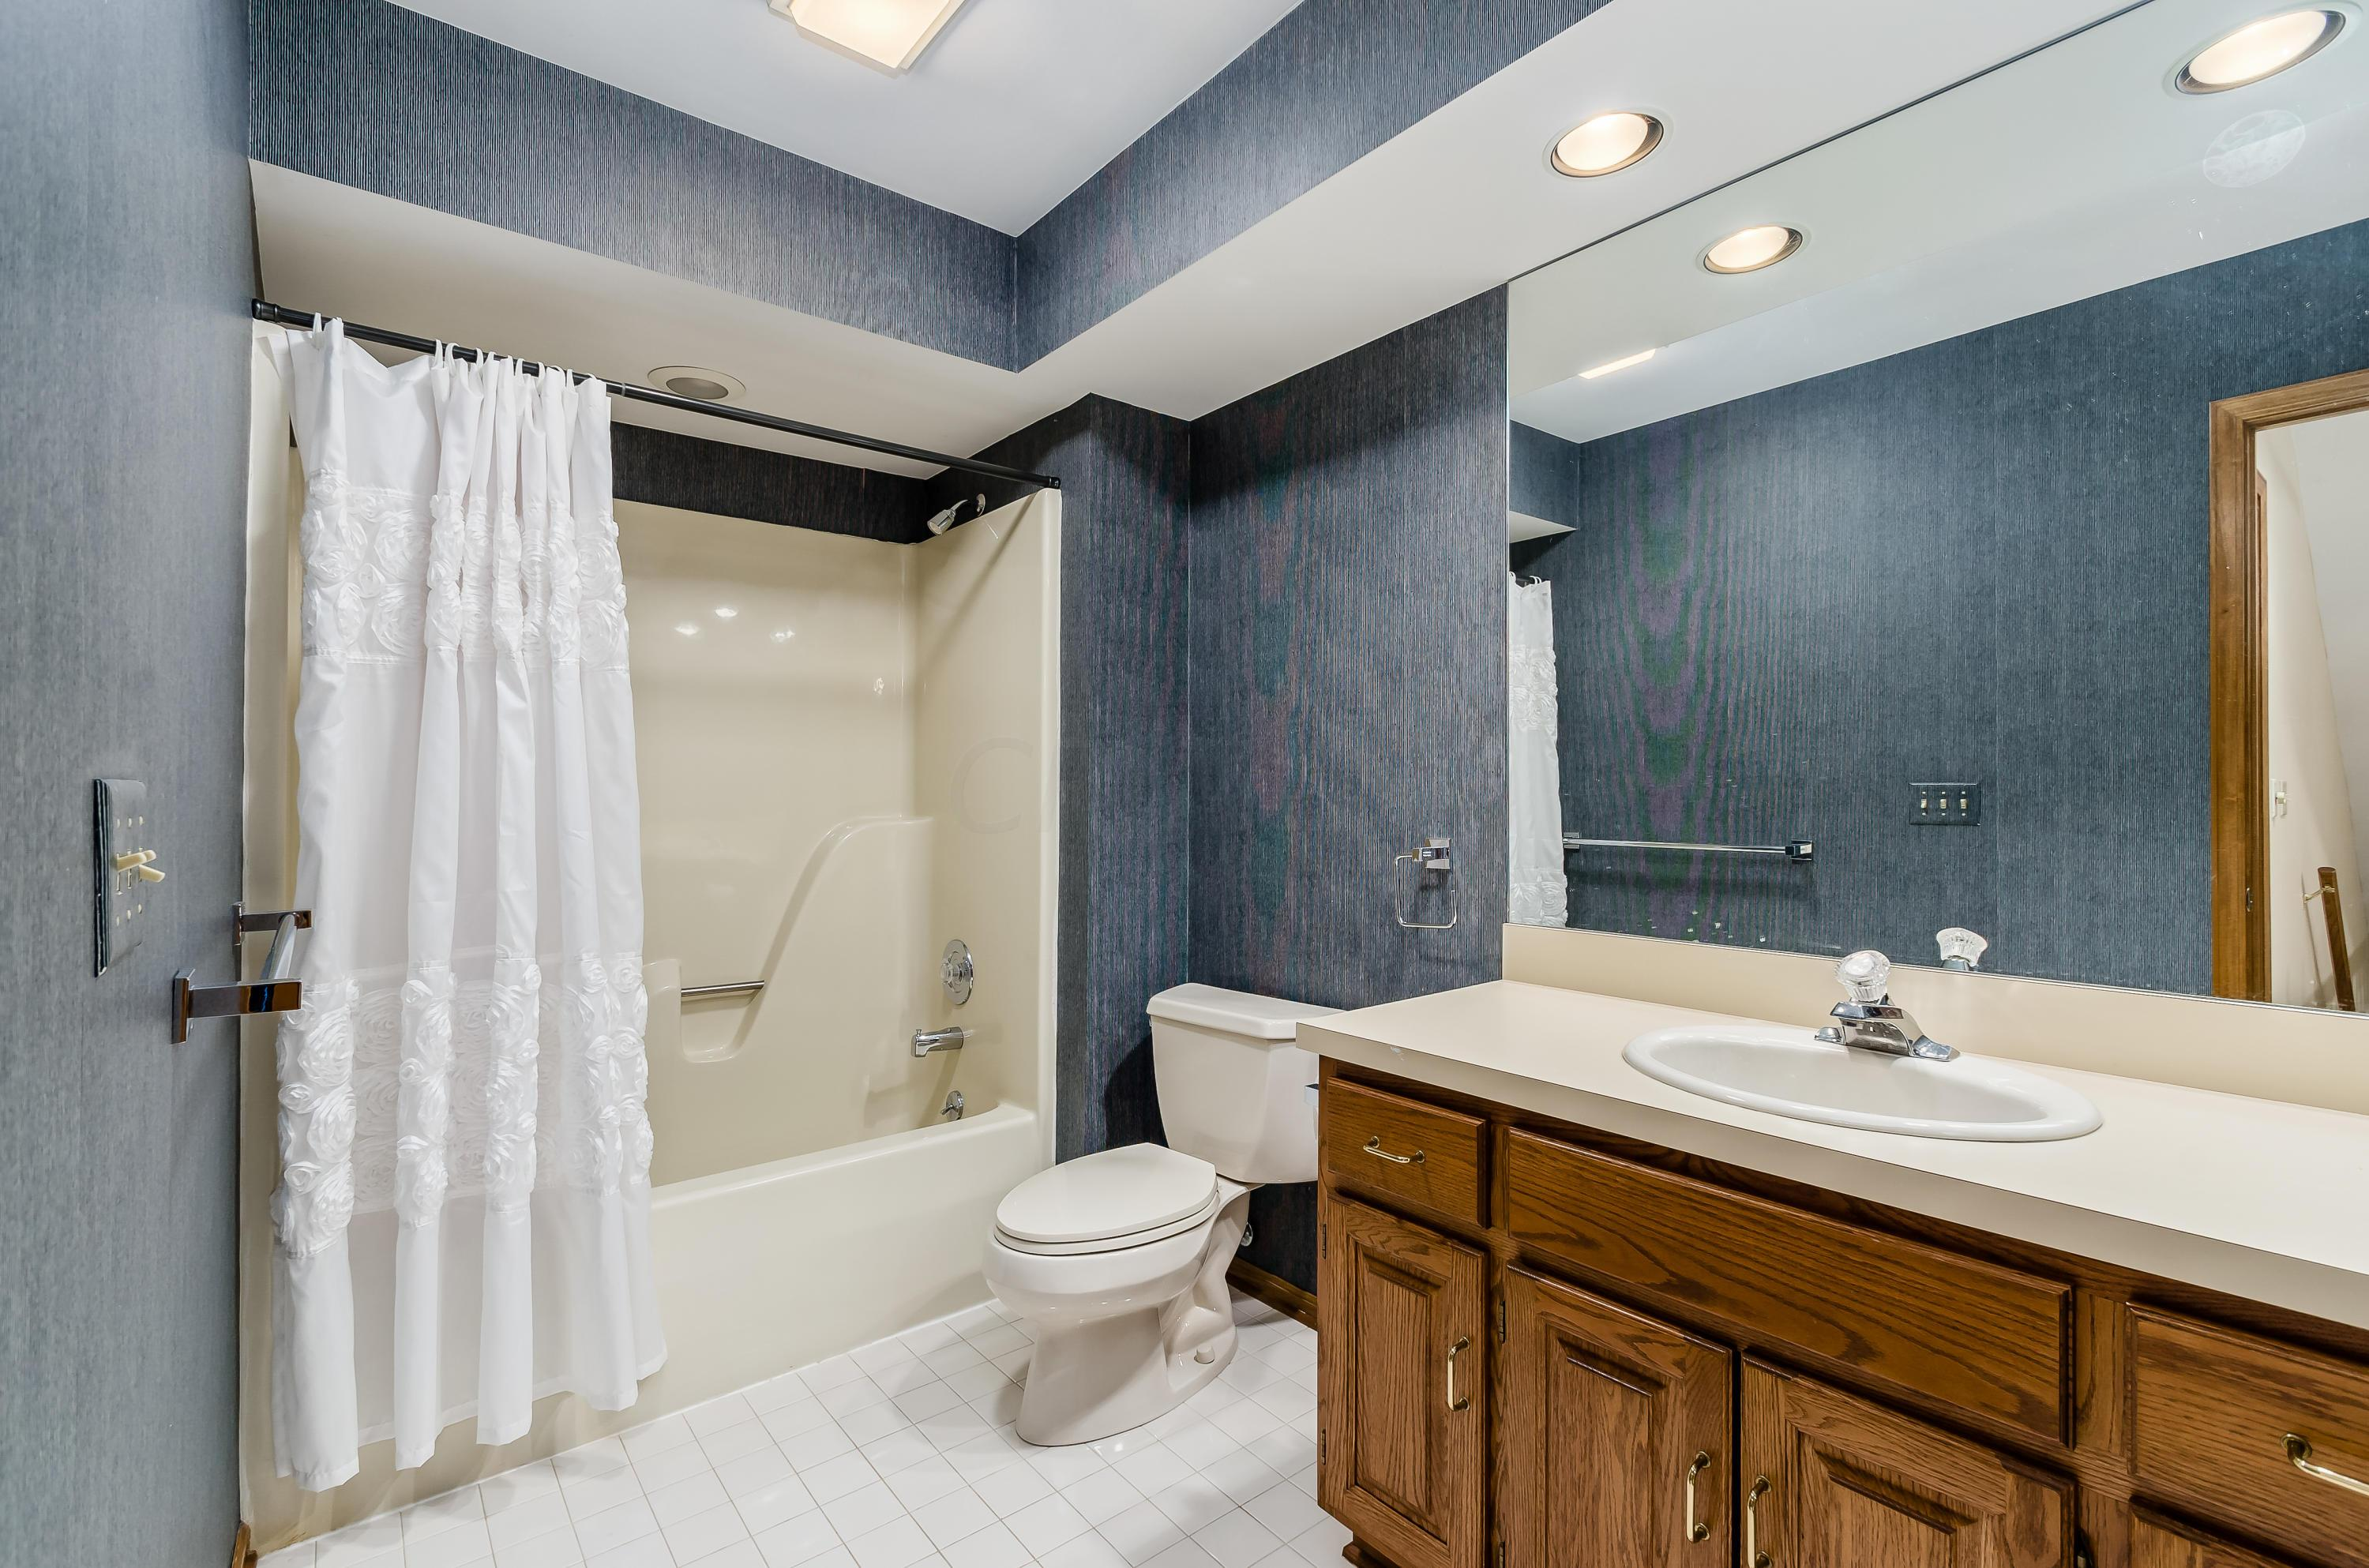 4478 Masters Court, Columbus, Ohio 43220, 3 Bedrooms Bedrooms, ,3 BathroomsBathrooms,Residential,For Sale,Masters,220019544